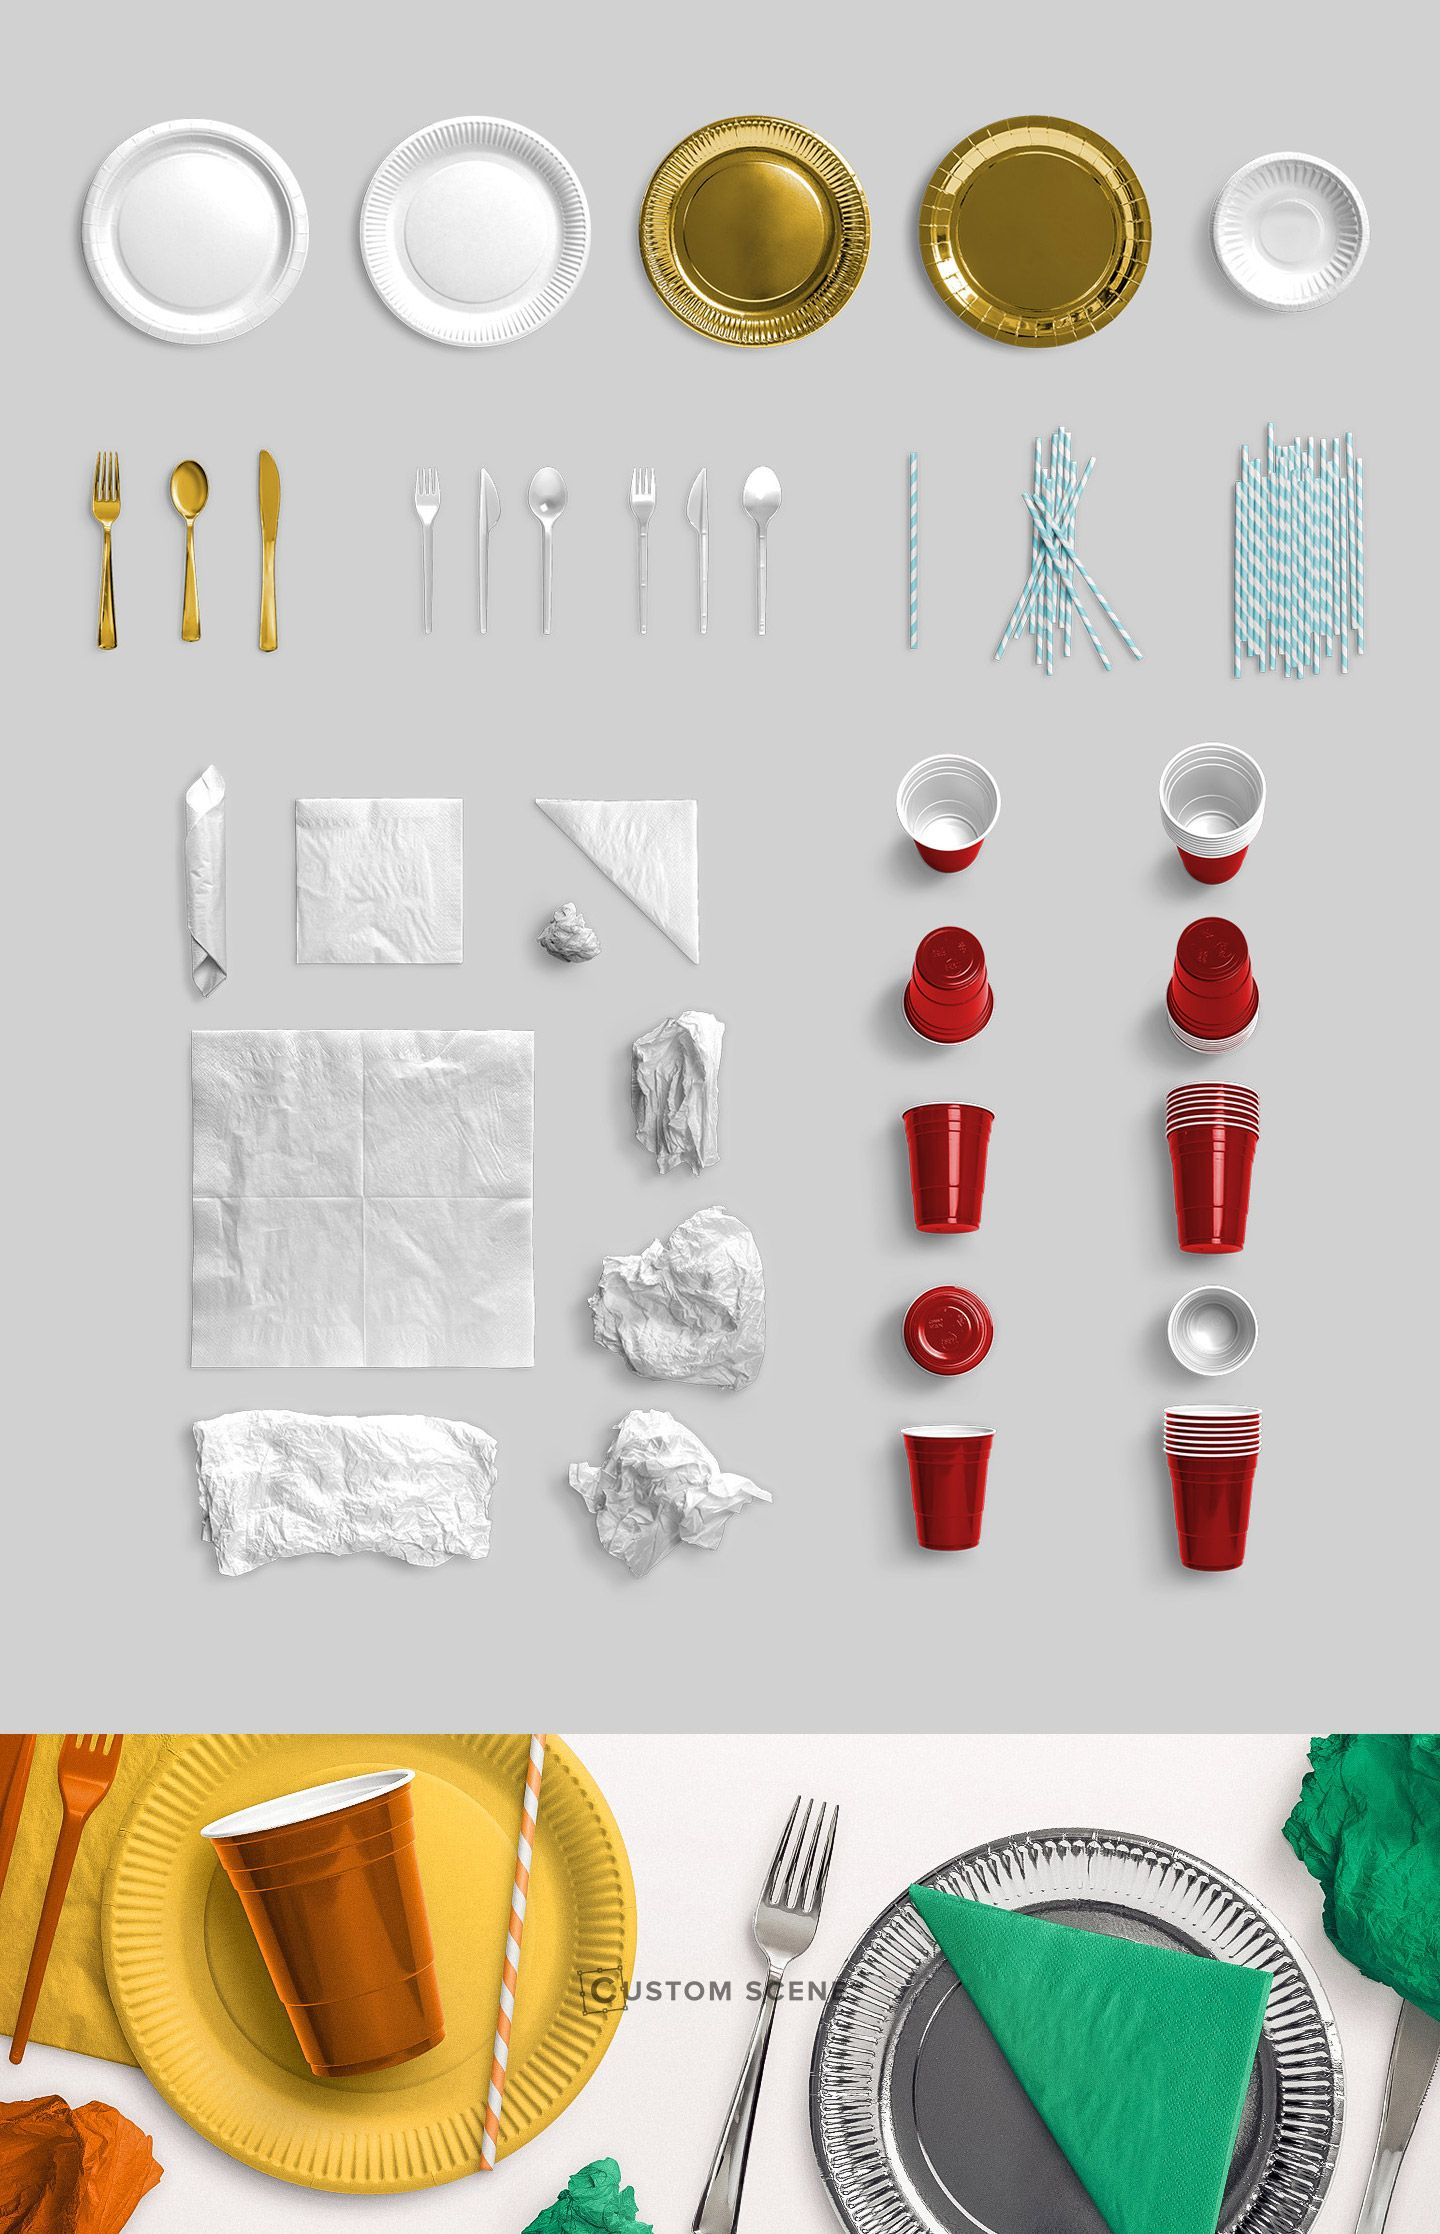 Plates, Cups, Straw, Napkins, Cutlery - Isolated Object - Custom Scene #flatlay #mockup #party